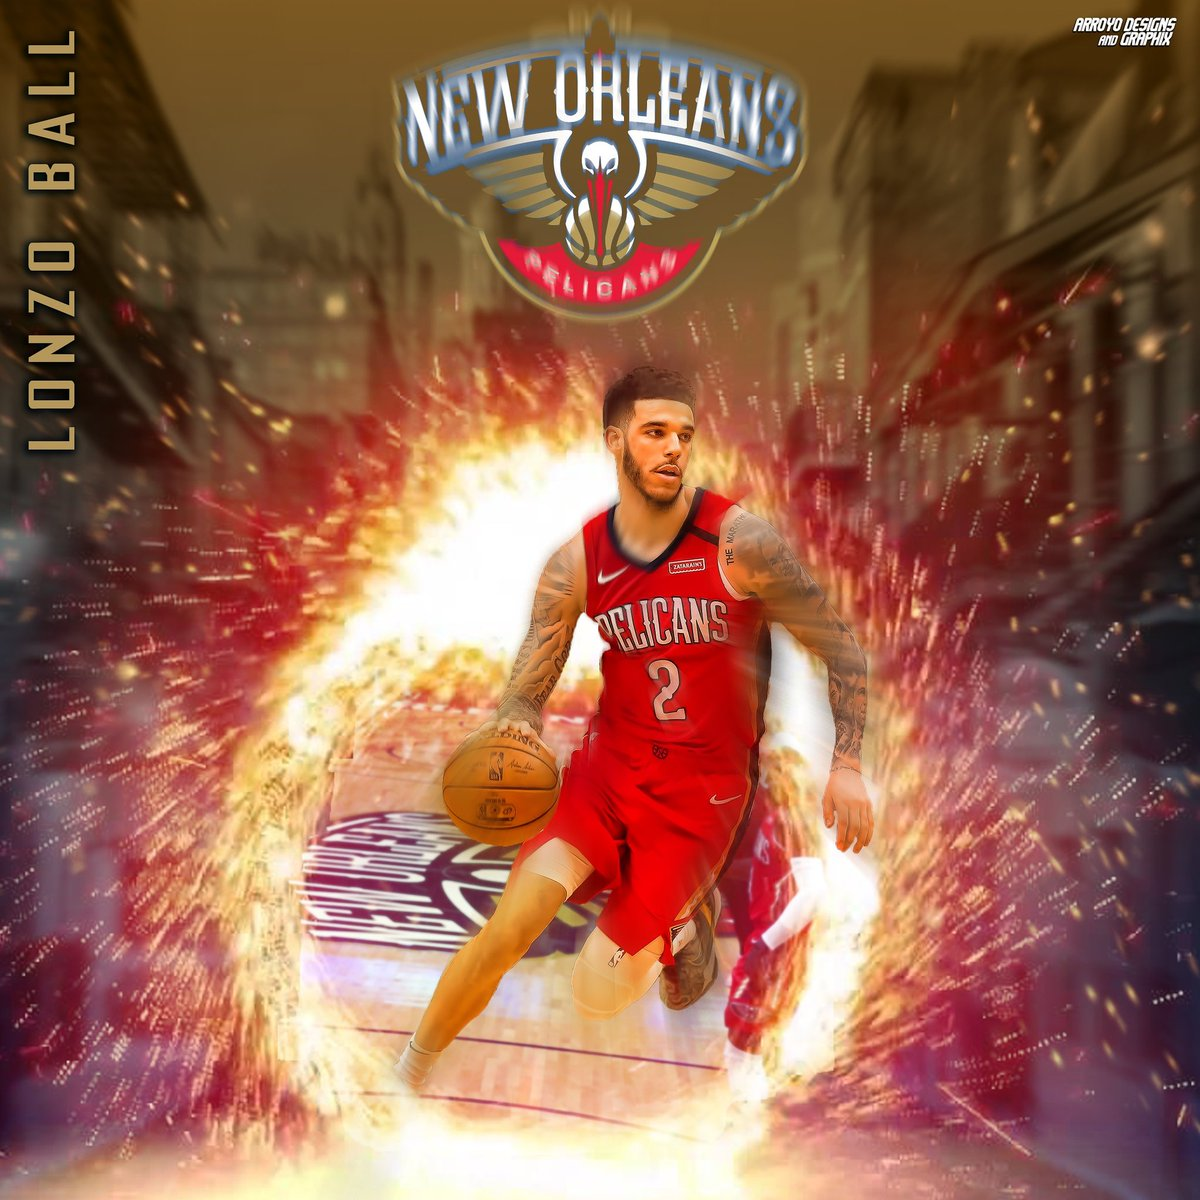 This season, #LonzoBall is averaging 11.9pts, 6.1reb, 6.7ast, 1.3stl. Settling in well in #NOLA! In this graphic, I have him going through a portal from the #SmoothieKingCenter floor to the middle of #BourbonStreet.  #NOLAsFinest #Pelicans #DoItBig #NBA #Basketball #BallIsLifepic.twitter.com/nWYx54Rx2L